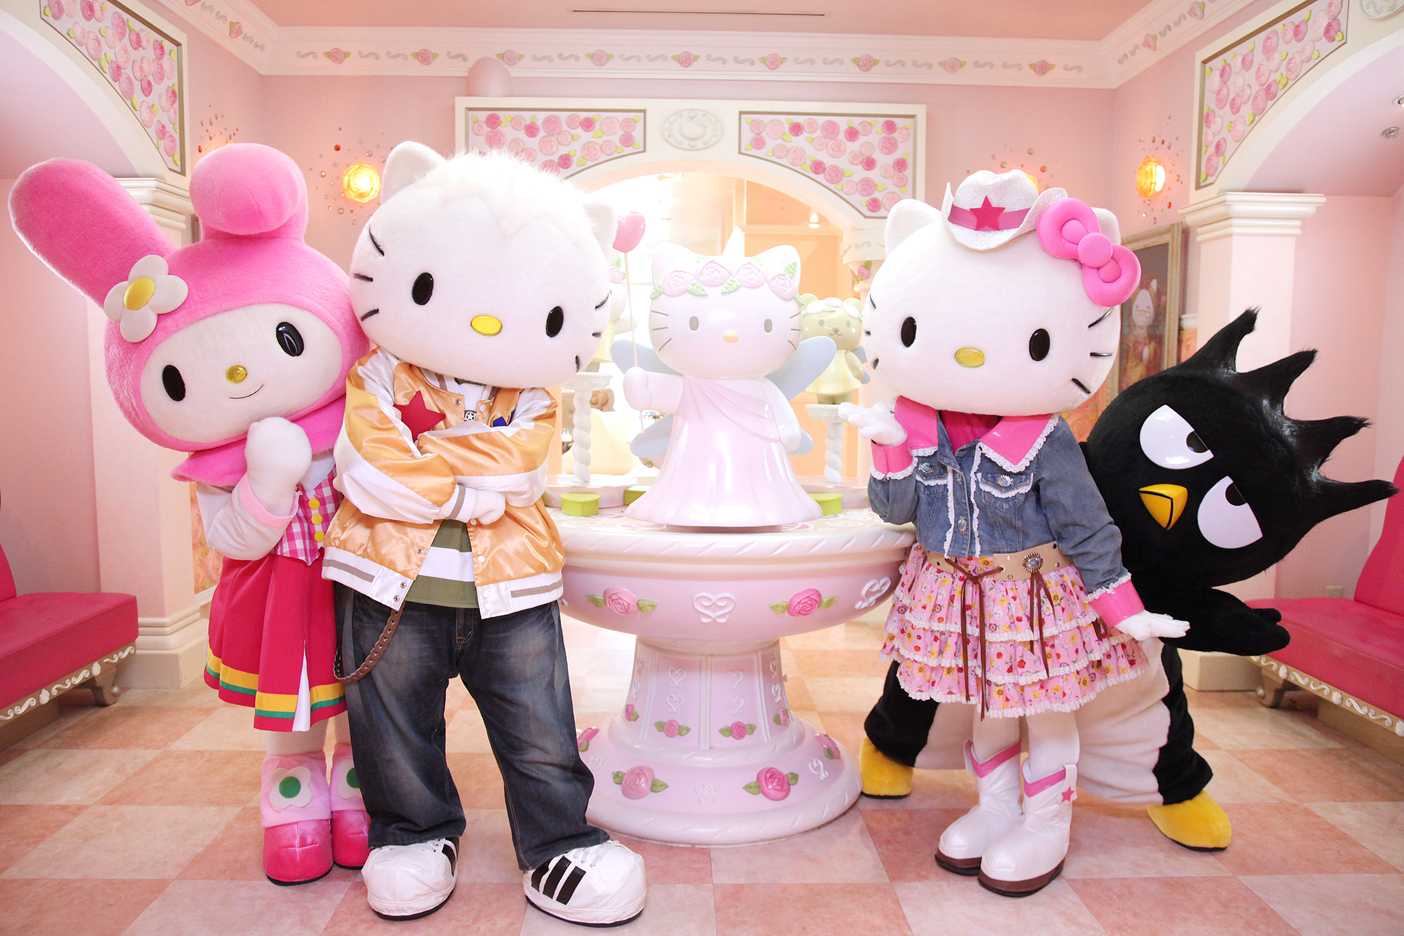 Hello Kitty town is the first Sanrio Hello Kitty theme park outside of Japan, consists of various walk-through attractions, interactive activities and rides which follow the Hello Kitty theme.